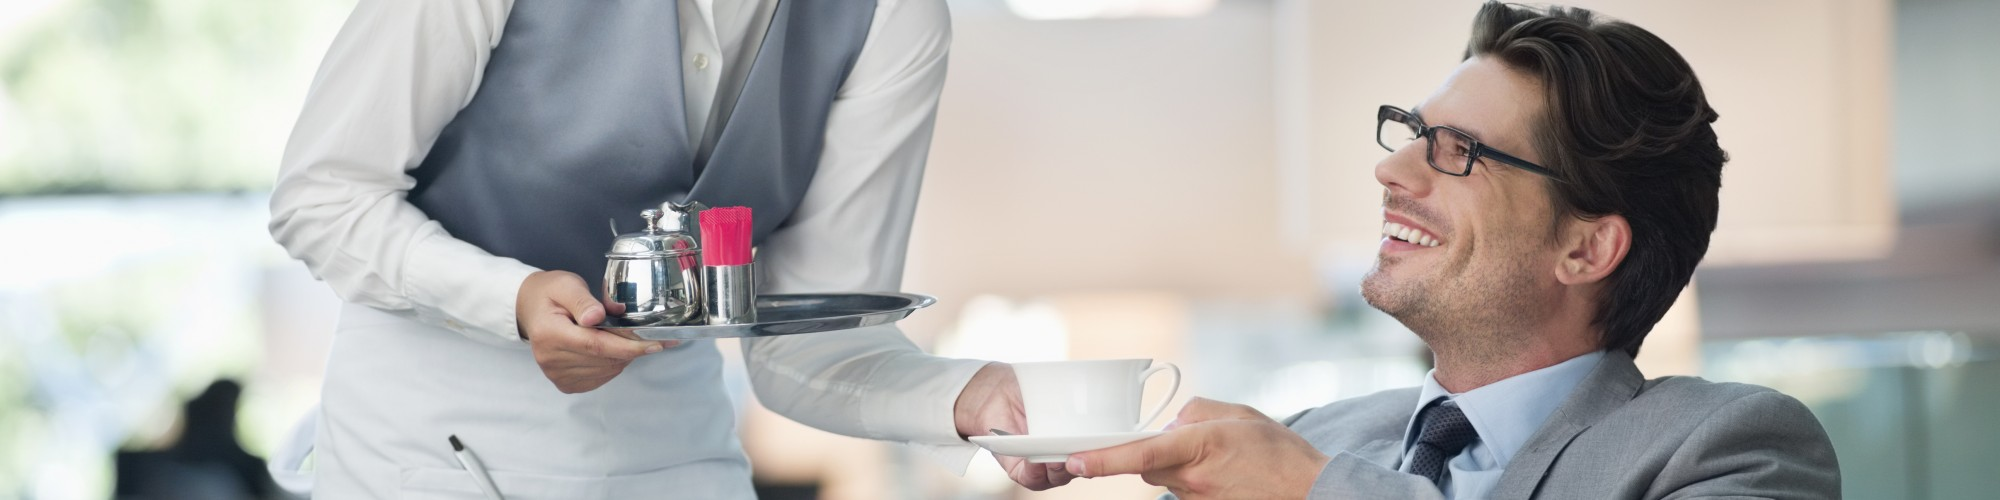 Waitress serving coffee to a business man